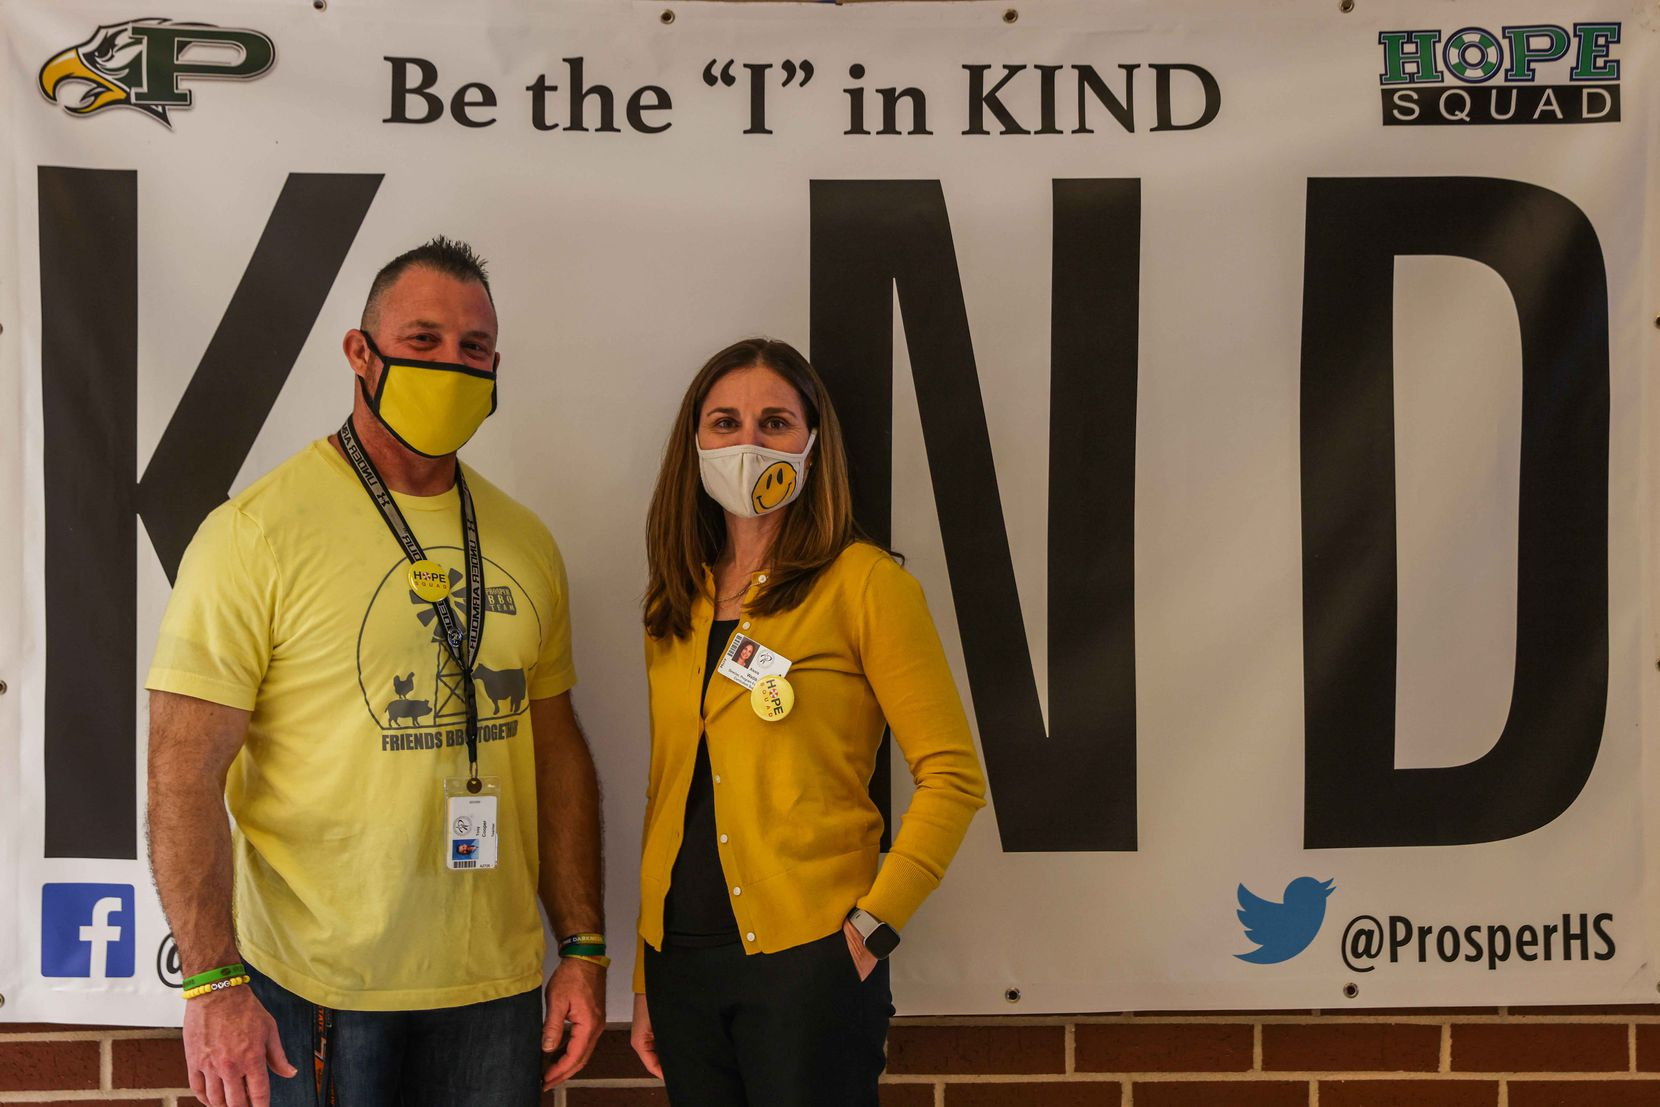 Coach Tony Cooper and Alexis Webb, the PISD point person for Hope Squad, stand with a Hope Squad banner in the Prosper High School lobby.